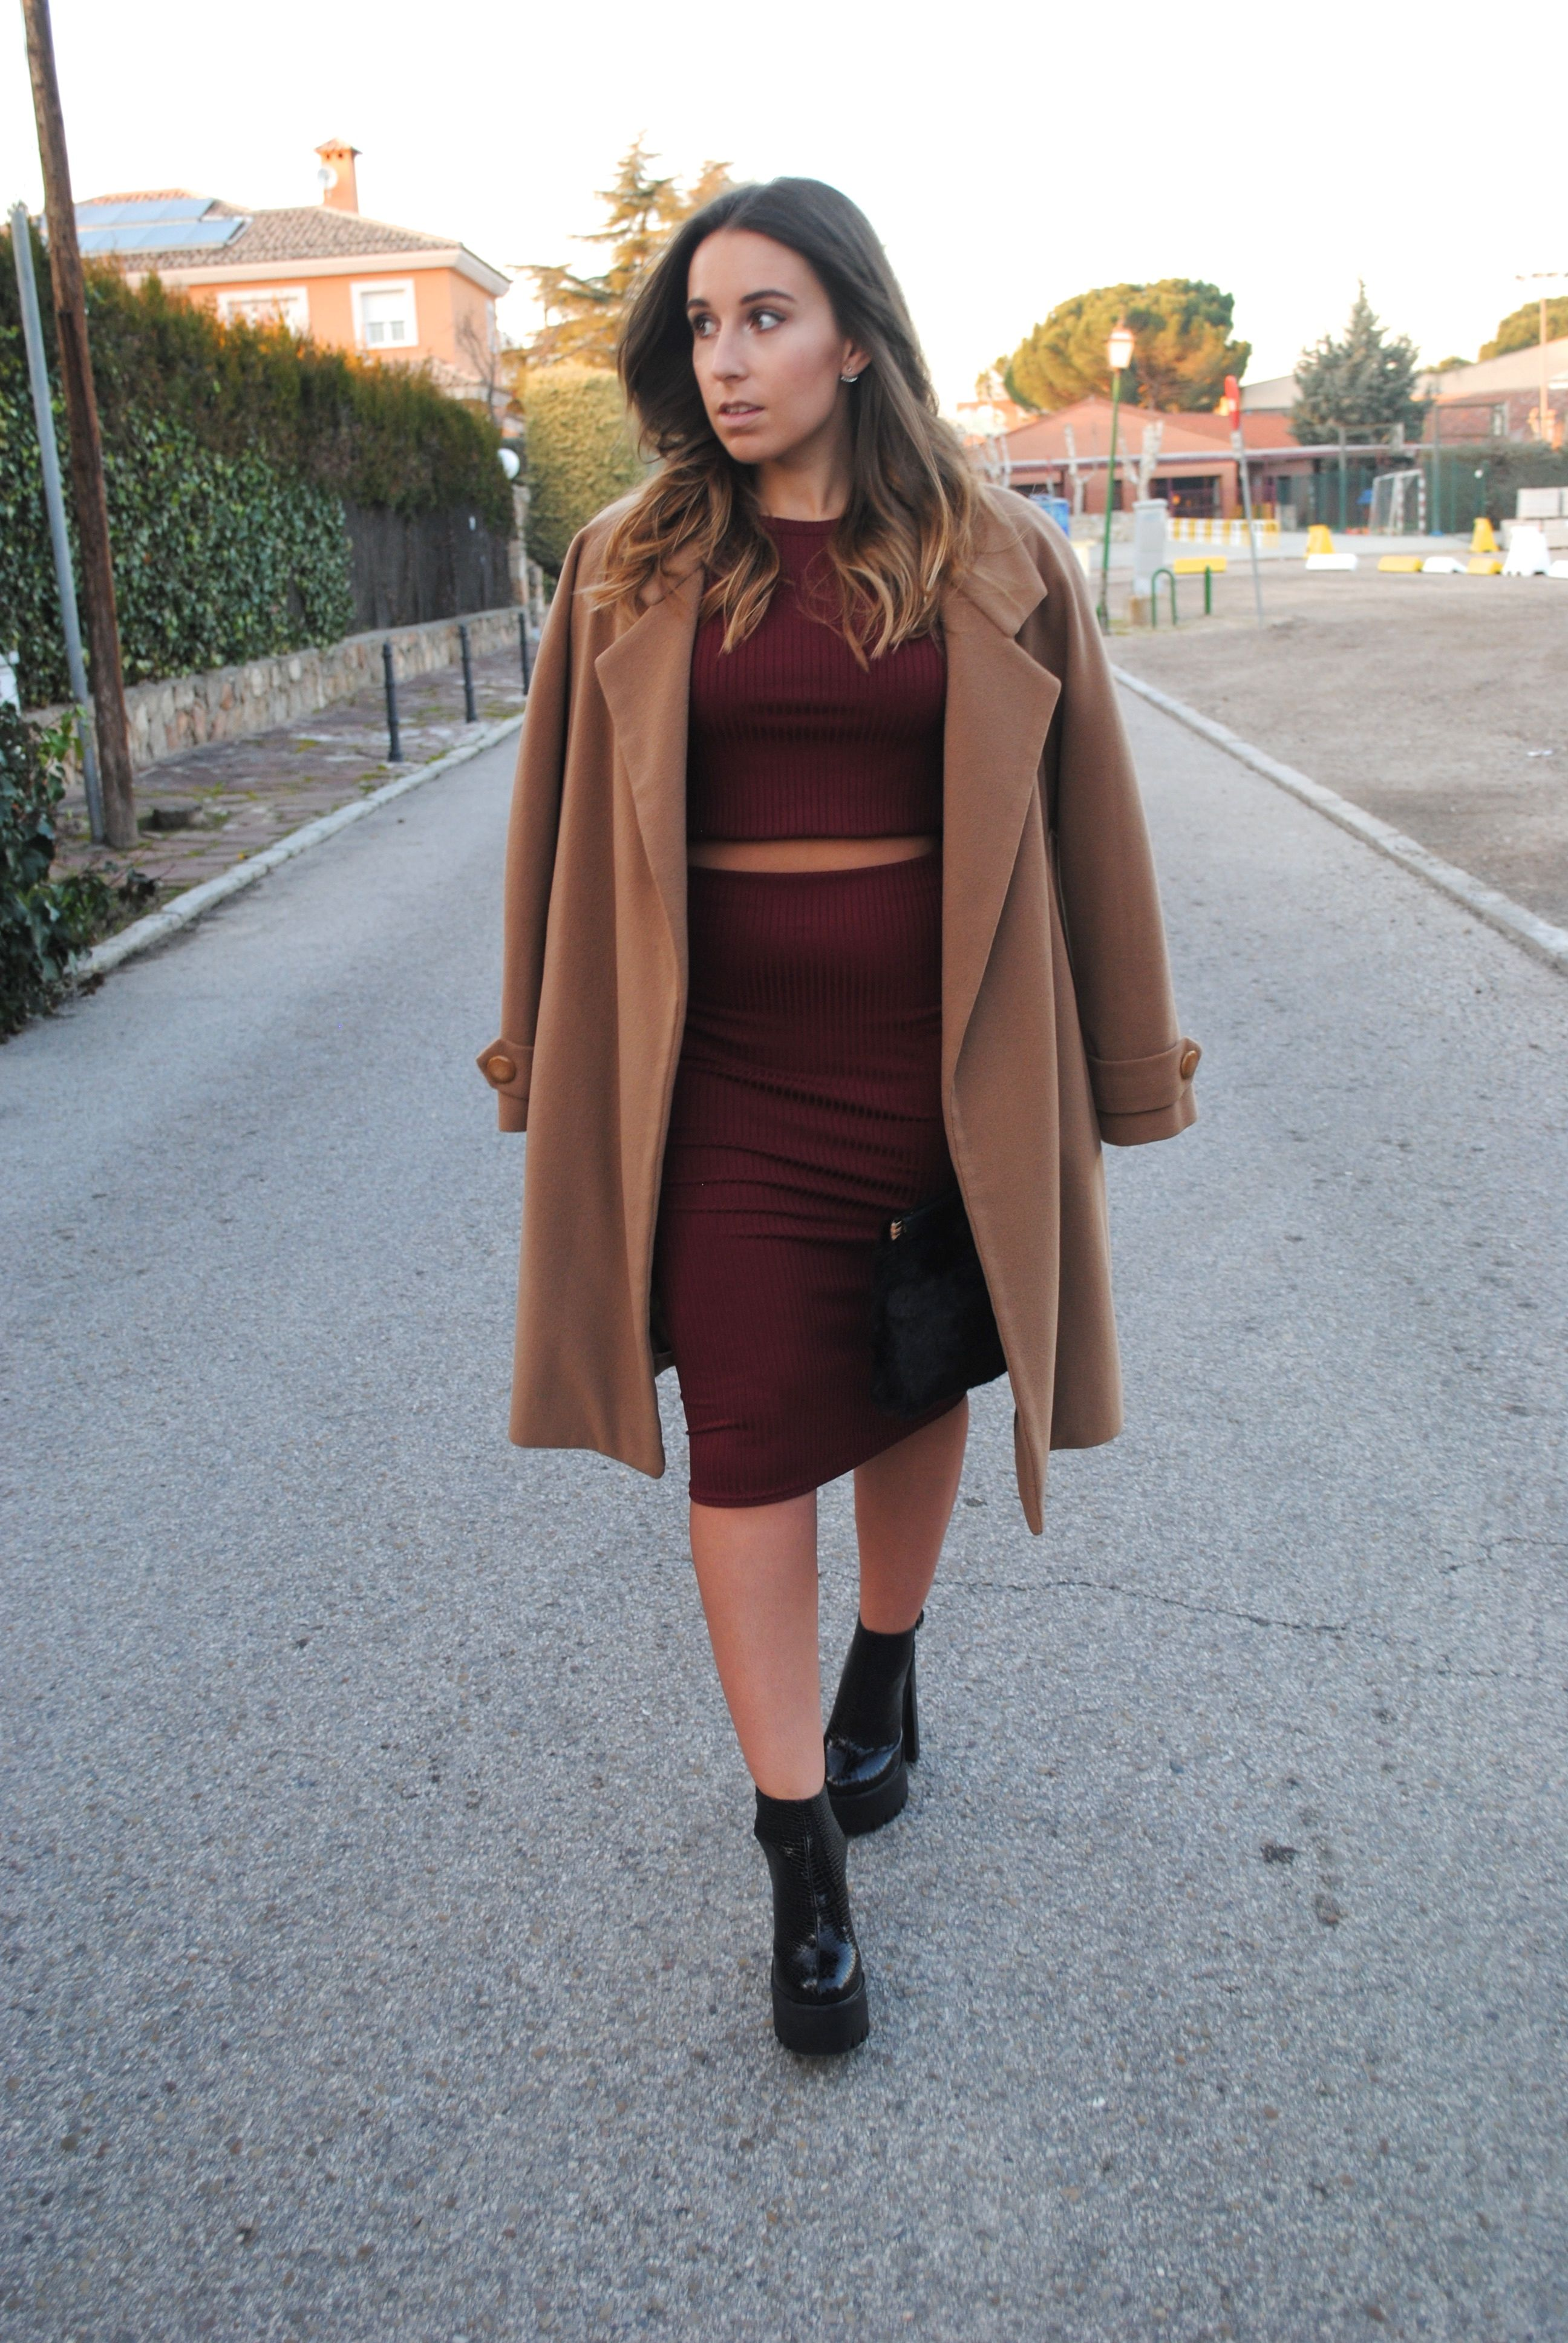 Go for a sophisticated look in a tan coat and a dark red